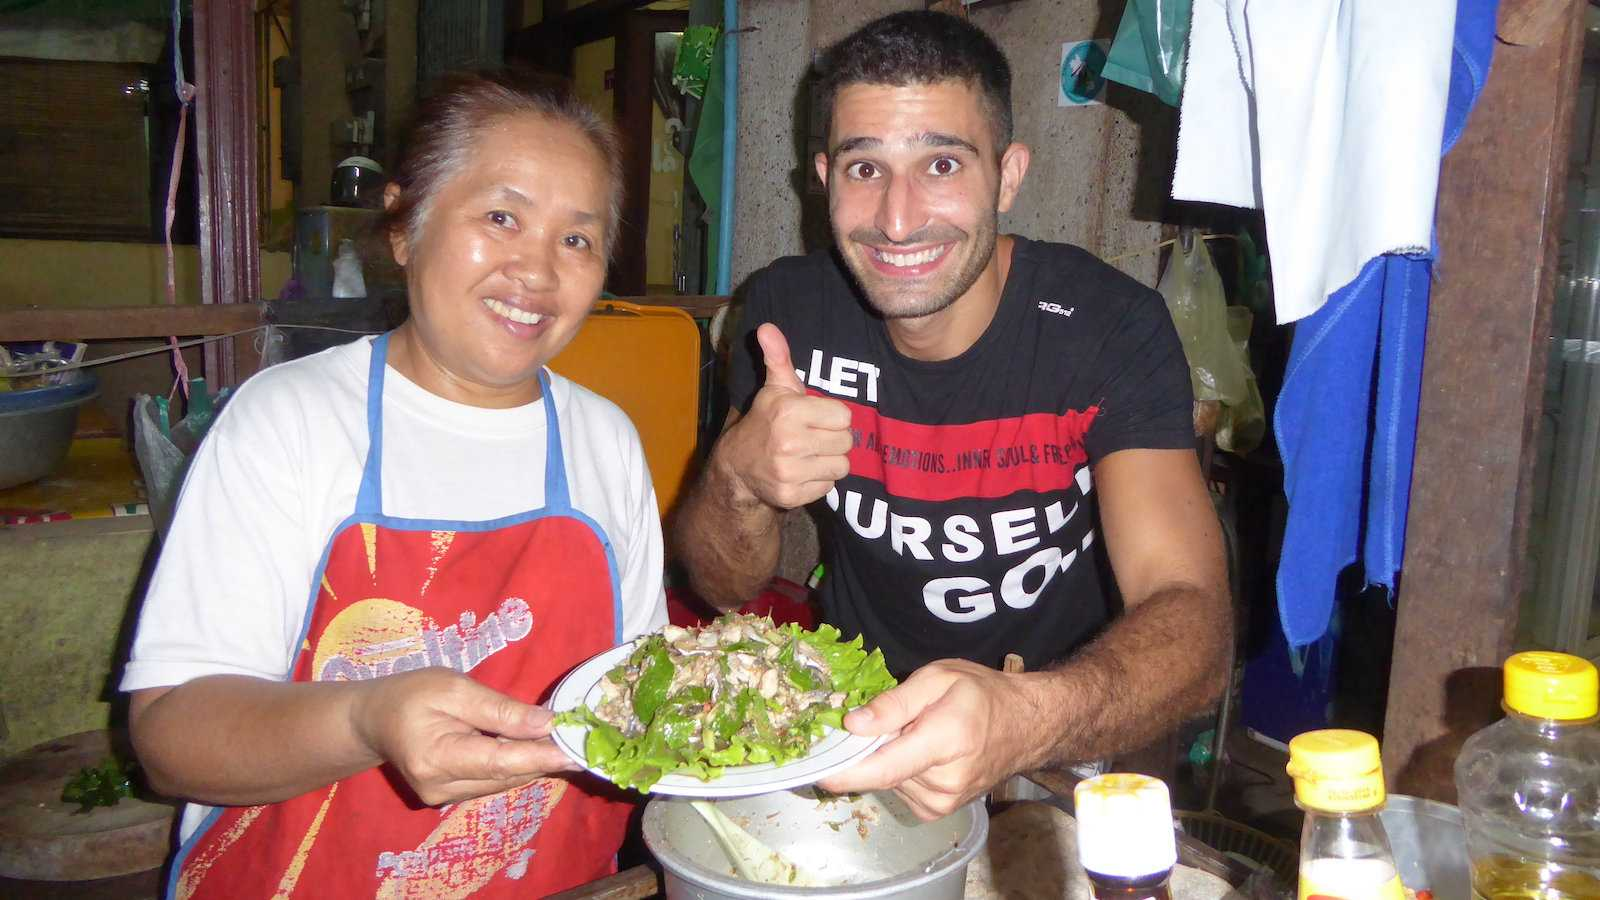 Laab is a spicy minced meat salad from northern Thailand which might not be to everyone's taste